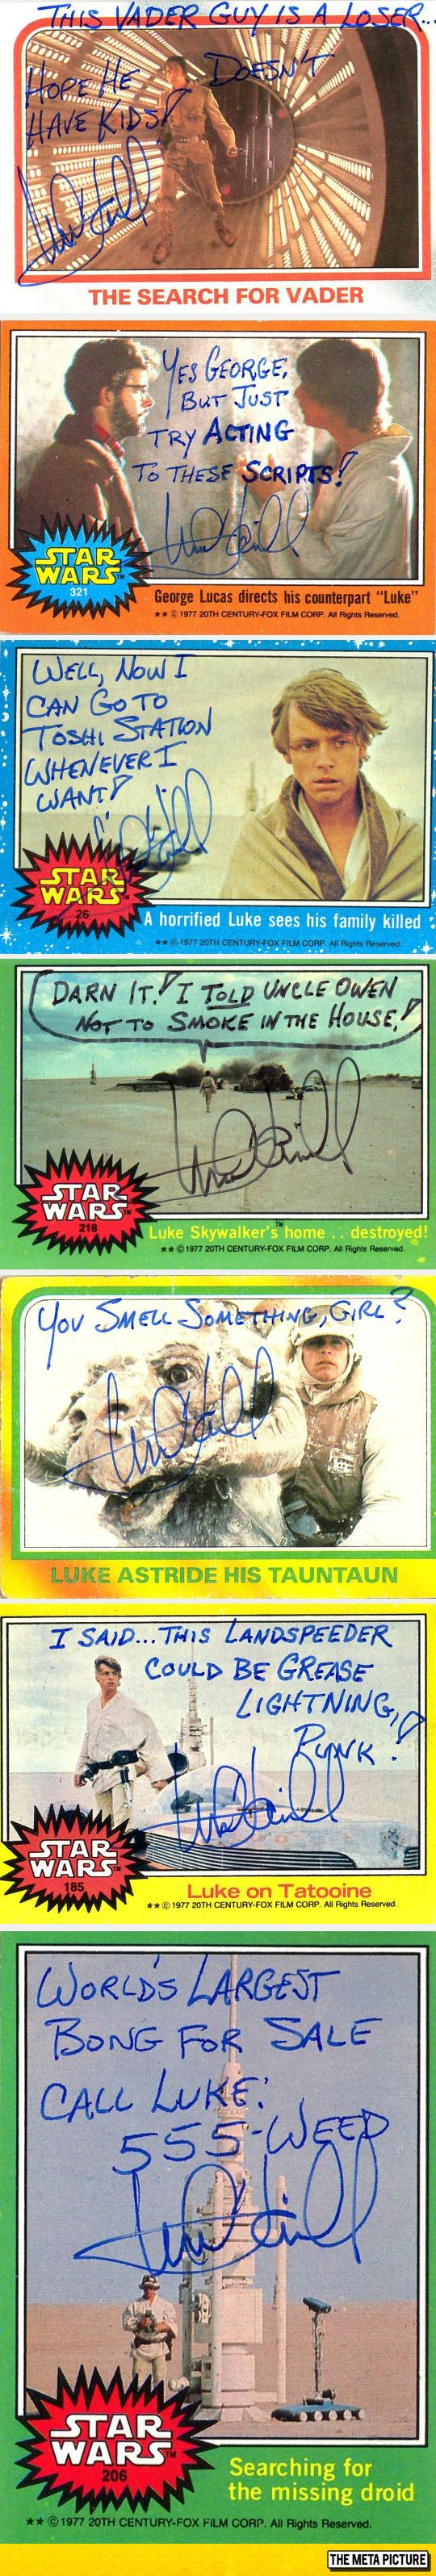 Mark Hamill Autographs Are Apparently Hilarious - this makes me like him even more.